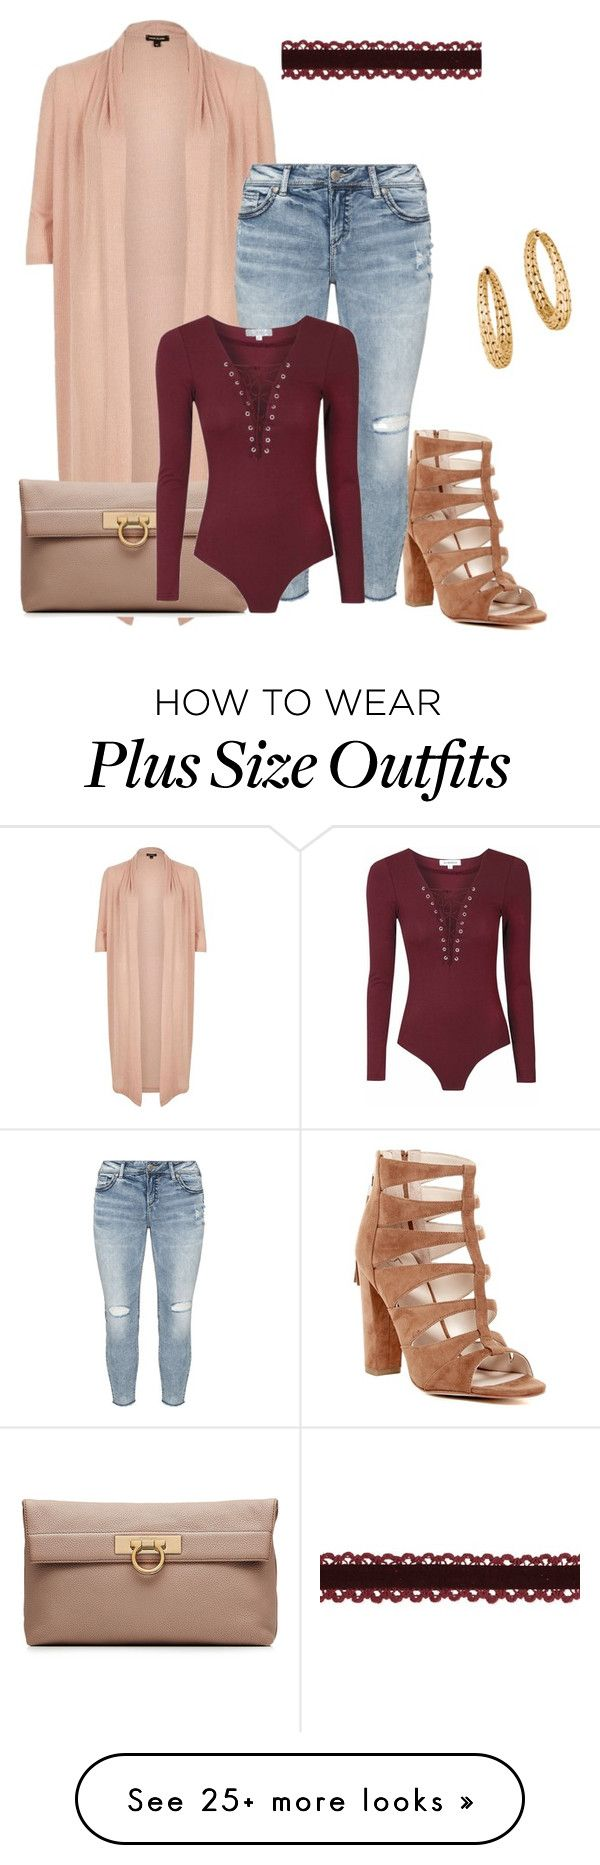 """Plus size fall chic"" by xtrak on Polyvore featuring Marc Fisher, River Island, Salvatore Ferragamo, Silver Jeans Co. and John Hardy"